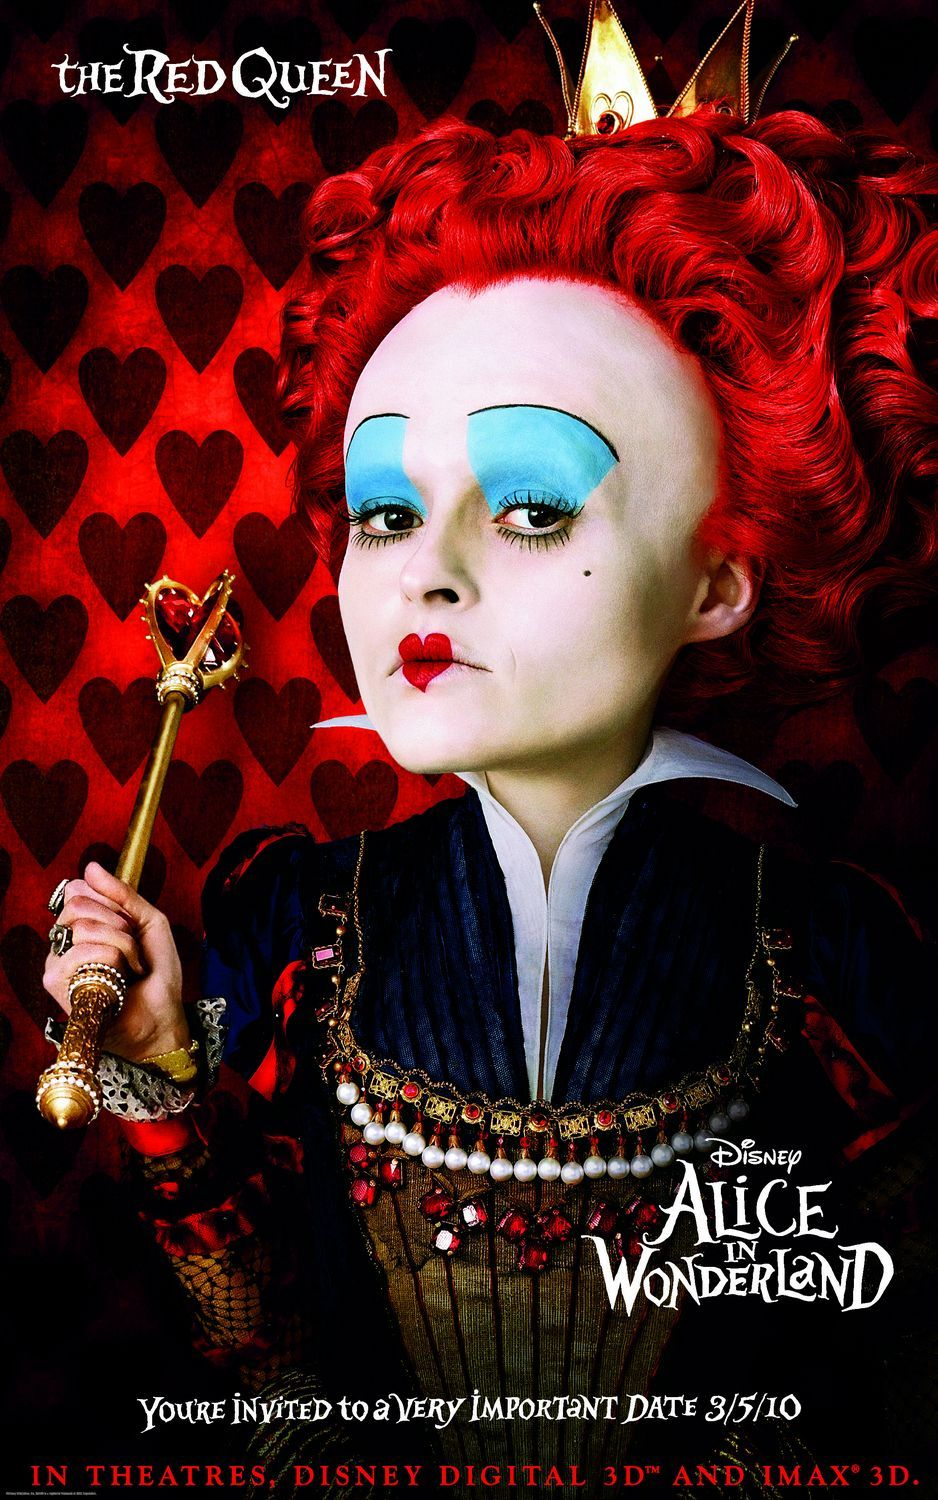 Alice In Wonderland Extra Large Movie Poster Image Internet Movie Poster Alice In Wonderland Makeup Film Alice In Wonderland Alice In Wonderland Characters